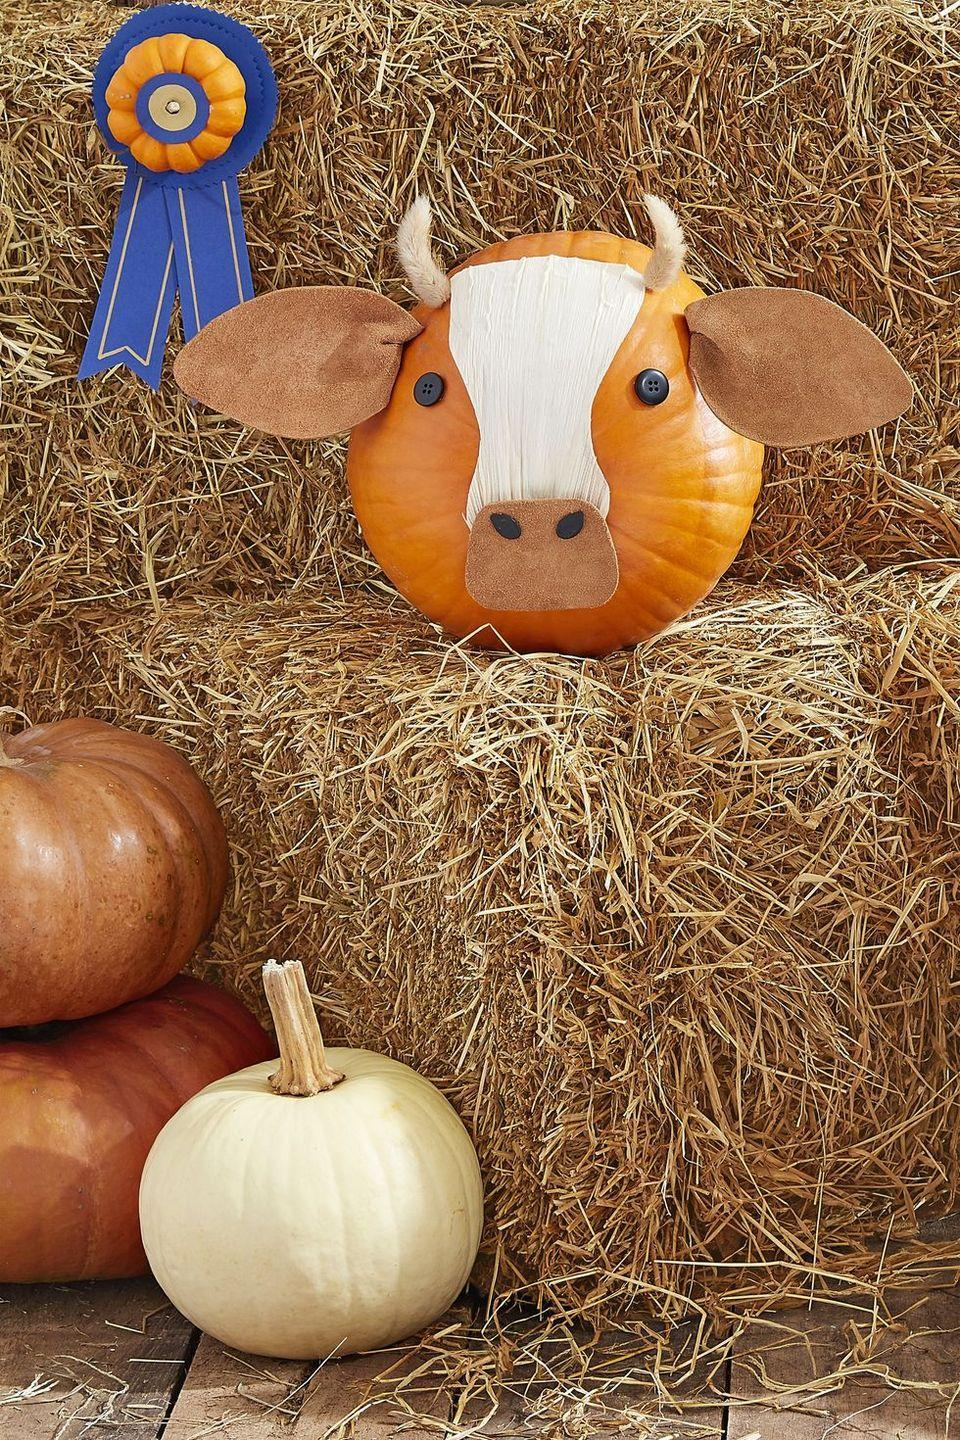 """<p>We dare you do find a mooo-re adorable pumpkin. Start by downloading, tracing, and cutting out these <a href=""""https://hmg-prod.s3.amazonaws.com/files/pumpkin-carving-template-cow-ears-1018-1536169820.pdf"""" rel=""""nofollow noopener"""" target=""""_blank"""" data-ylk=""""slk:cow ear and nose templates"""" class=""""link rapid-noclick-resp"""">cow ear and nose templates</a> onto brown leather. Repeat with this <a href=""""https://hmg-prod.s3.amazonaws.com/files/pumpkin-carving-template-cow-1018-1536169820.pdf"""" rel=""""nofollow noopener"""" target=""""_blank"""" data-ylk=""""slk:forehead pattern"""" class=""""link rapid-noclick-resp"""">forehead pattern</a> on a corn husk. Hot-glue ears, nose, and forehead to the bottom of a pumpkin. Paint two pumpkin seeds with black craft paint. Hot-glue the seeds for nostrils, black buttons for eyes and dried bunny tail grass tops for horns.</p>"""